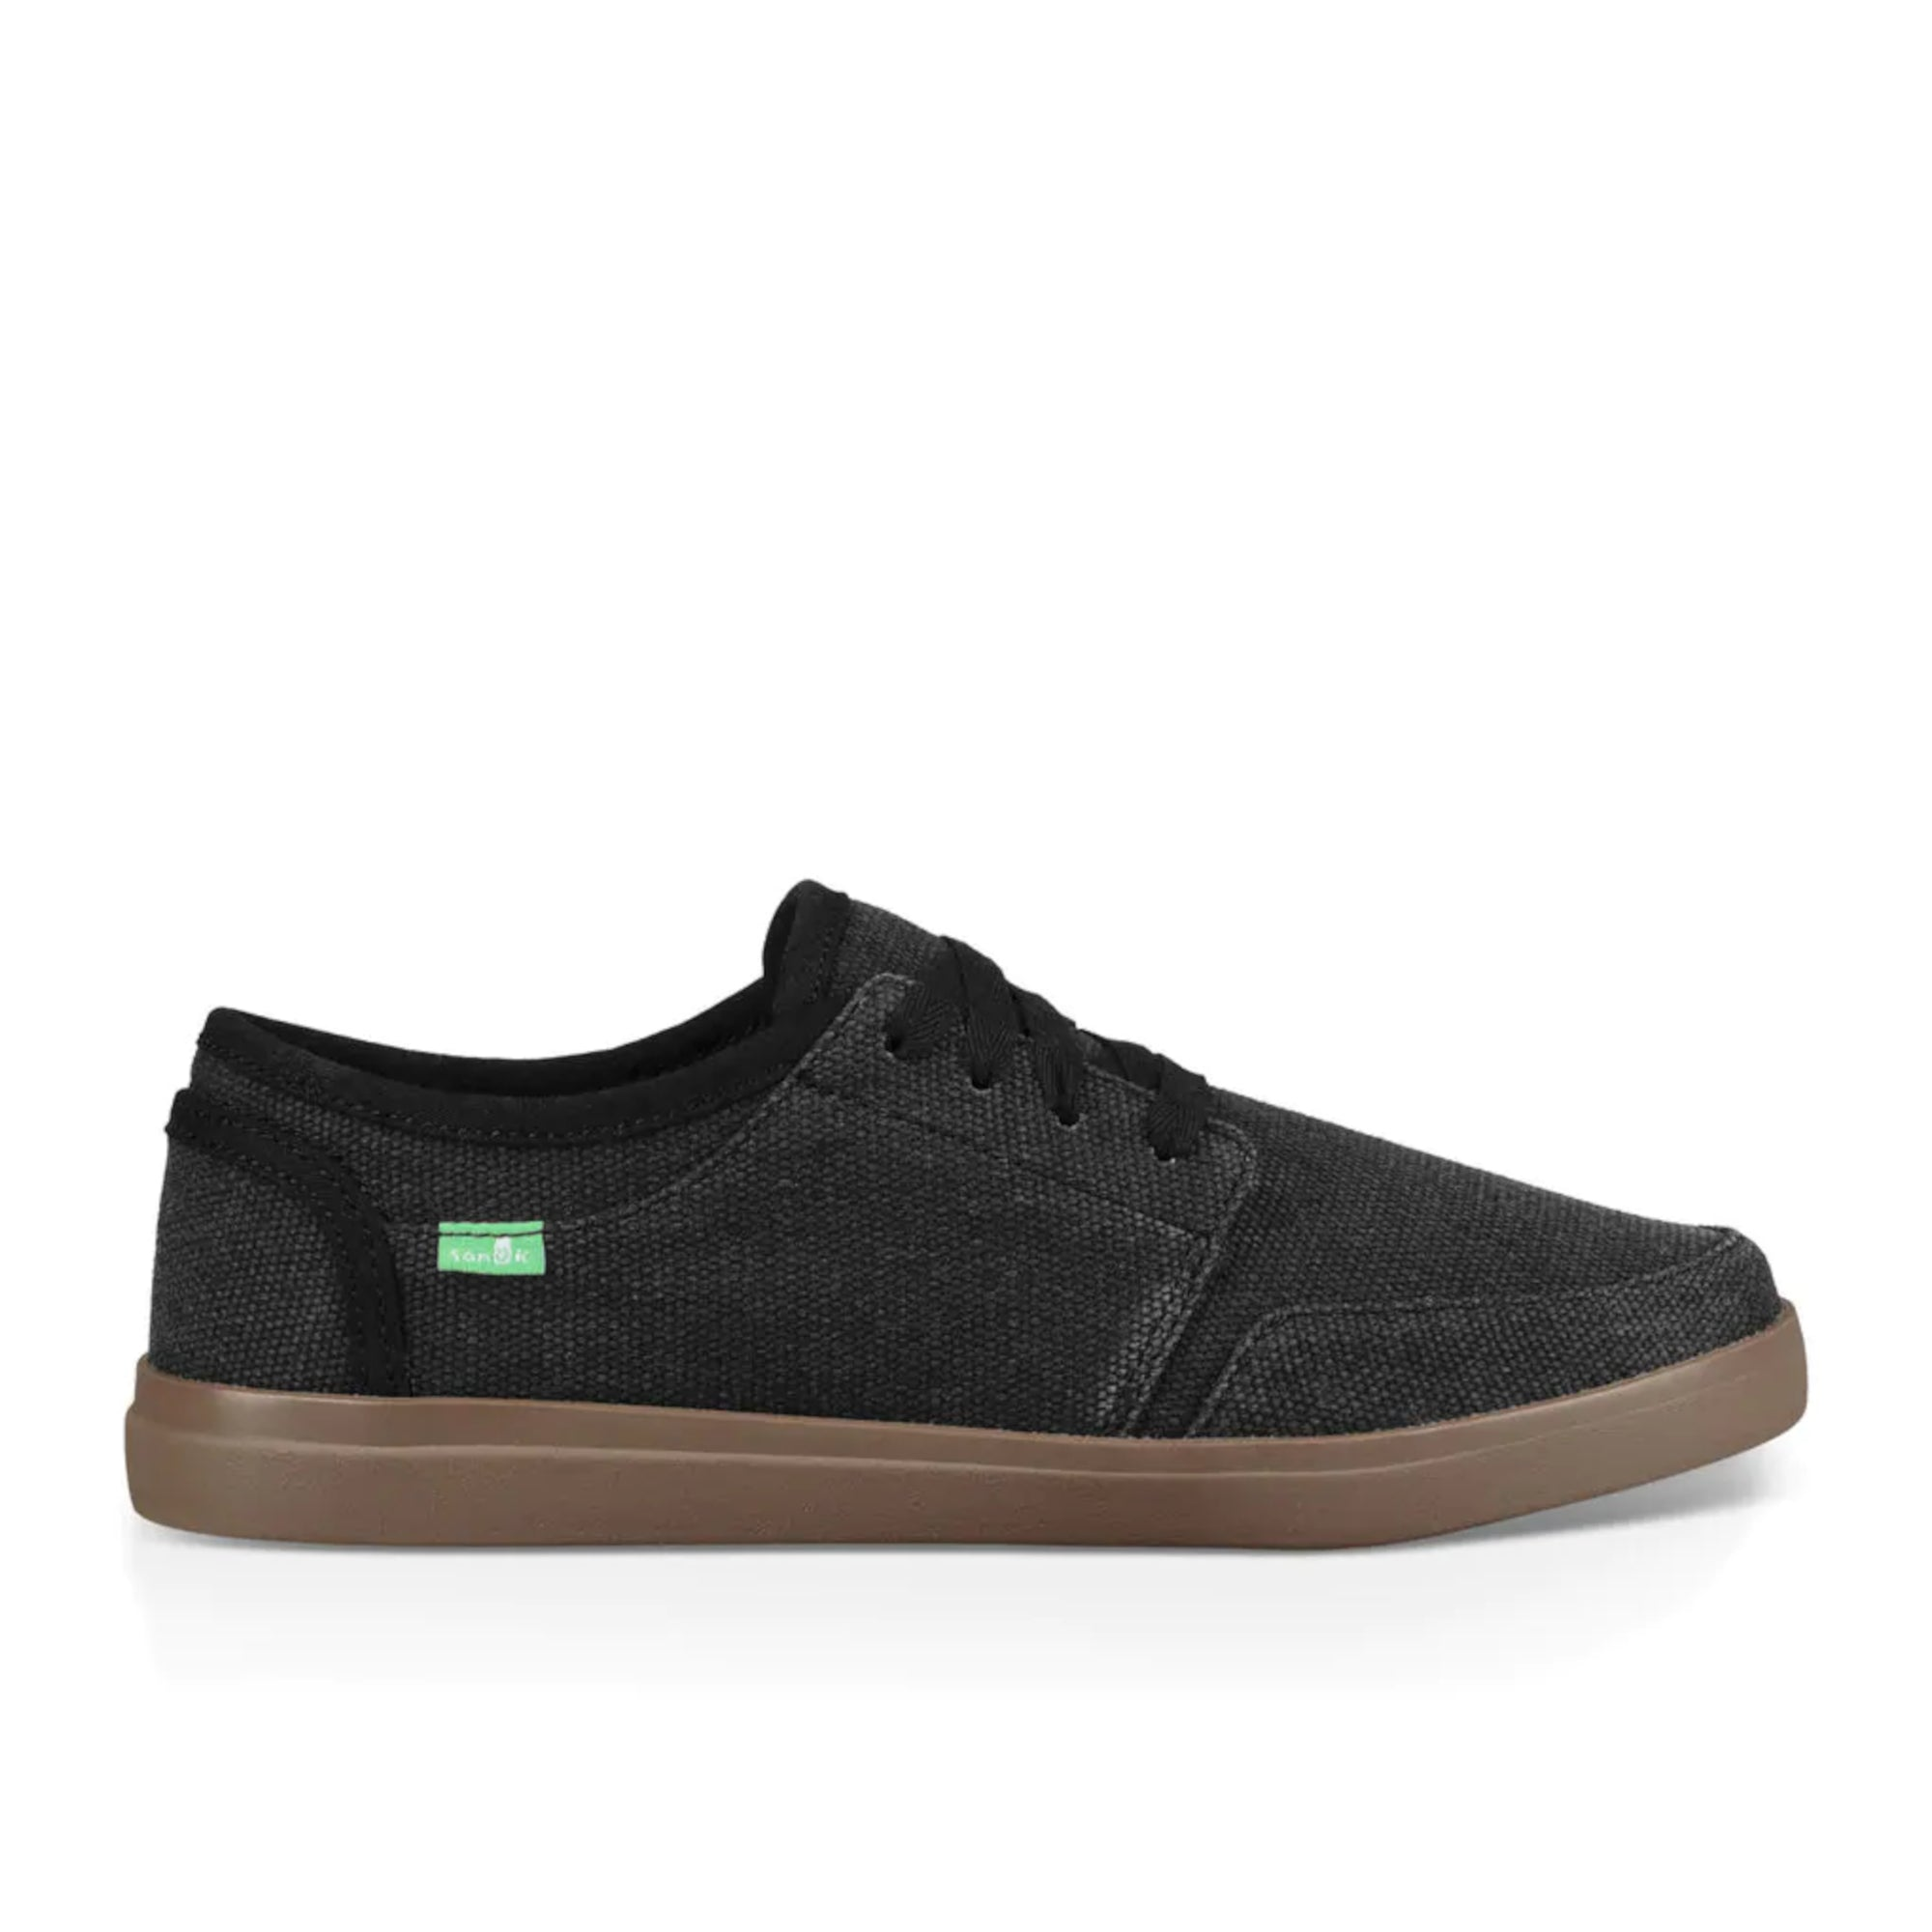 Sanuk Vagabond Lace Men's Shoes